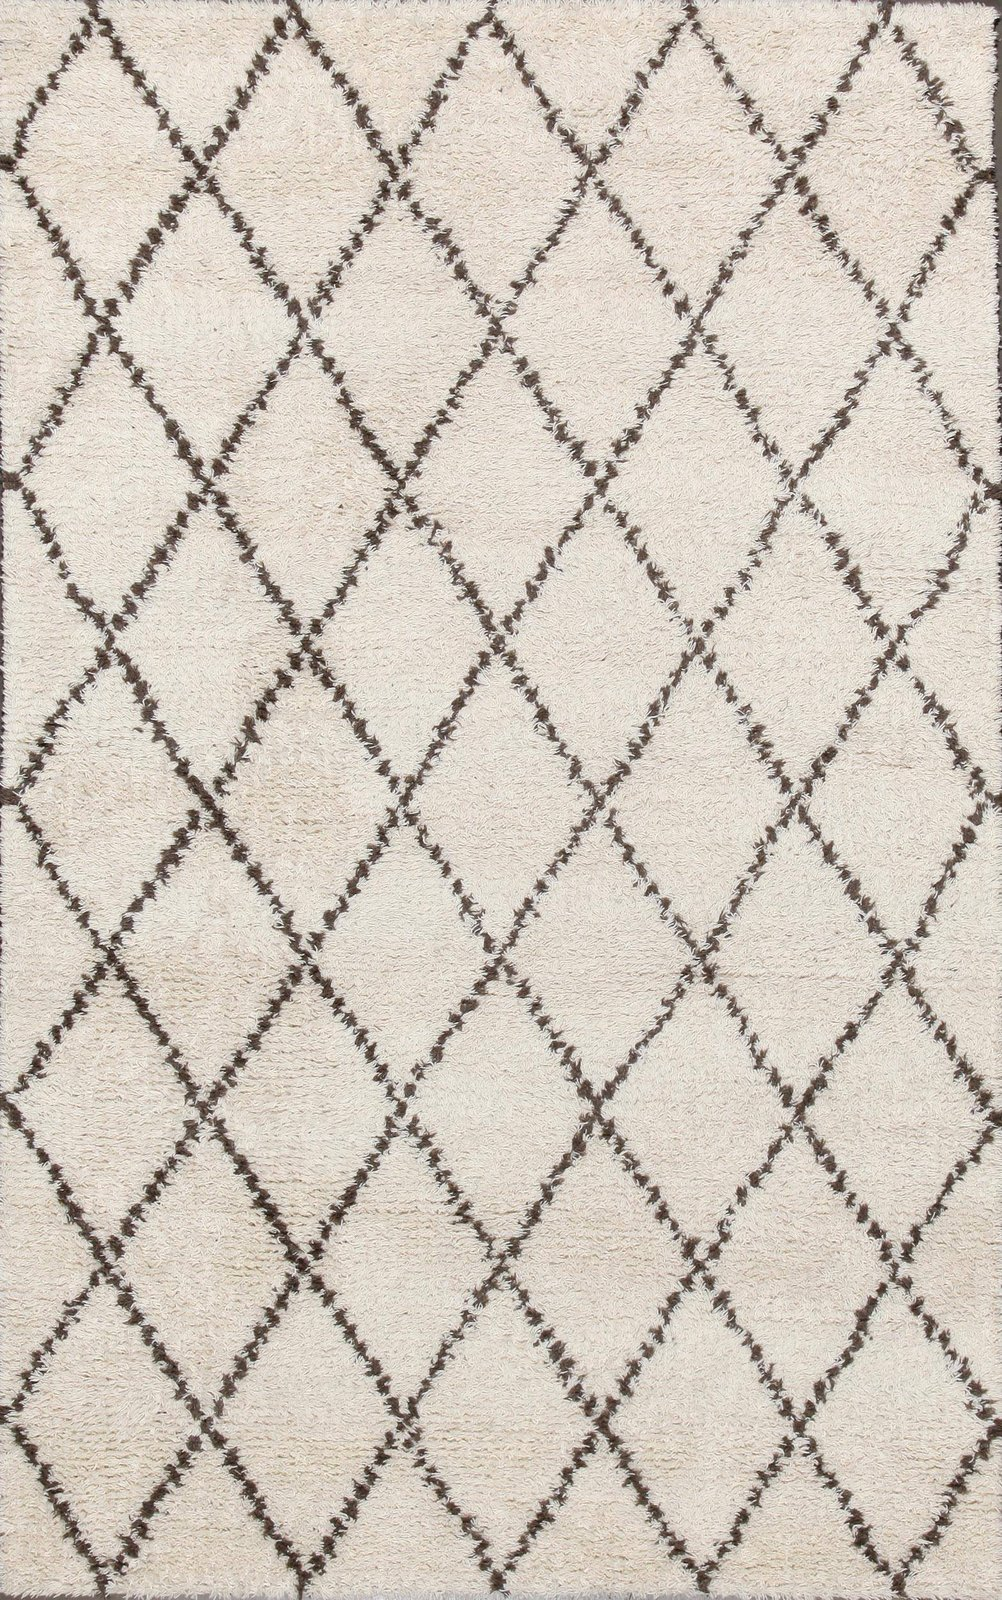 Rugsville Moroccan Beni Ourain Ivory 10996 Wool Rug ($845)  Photo 4 of 19 in This Is How an Aussie Model Decorates a Family Home—and It's So Cool